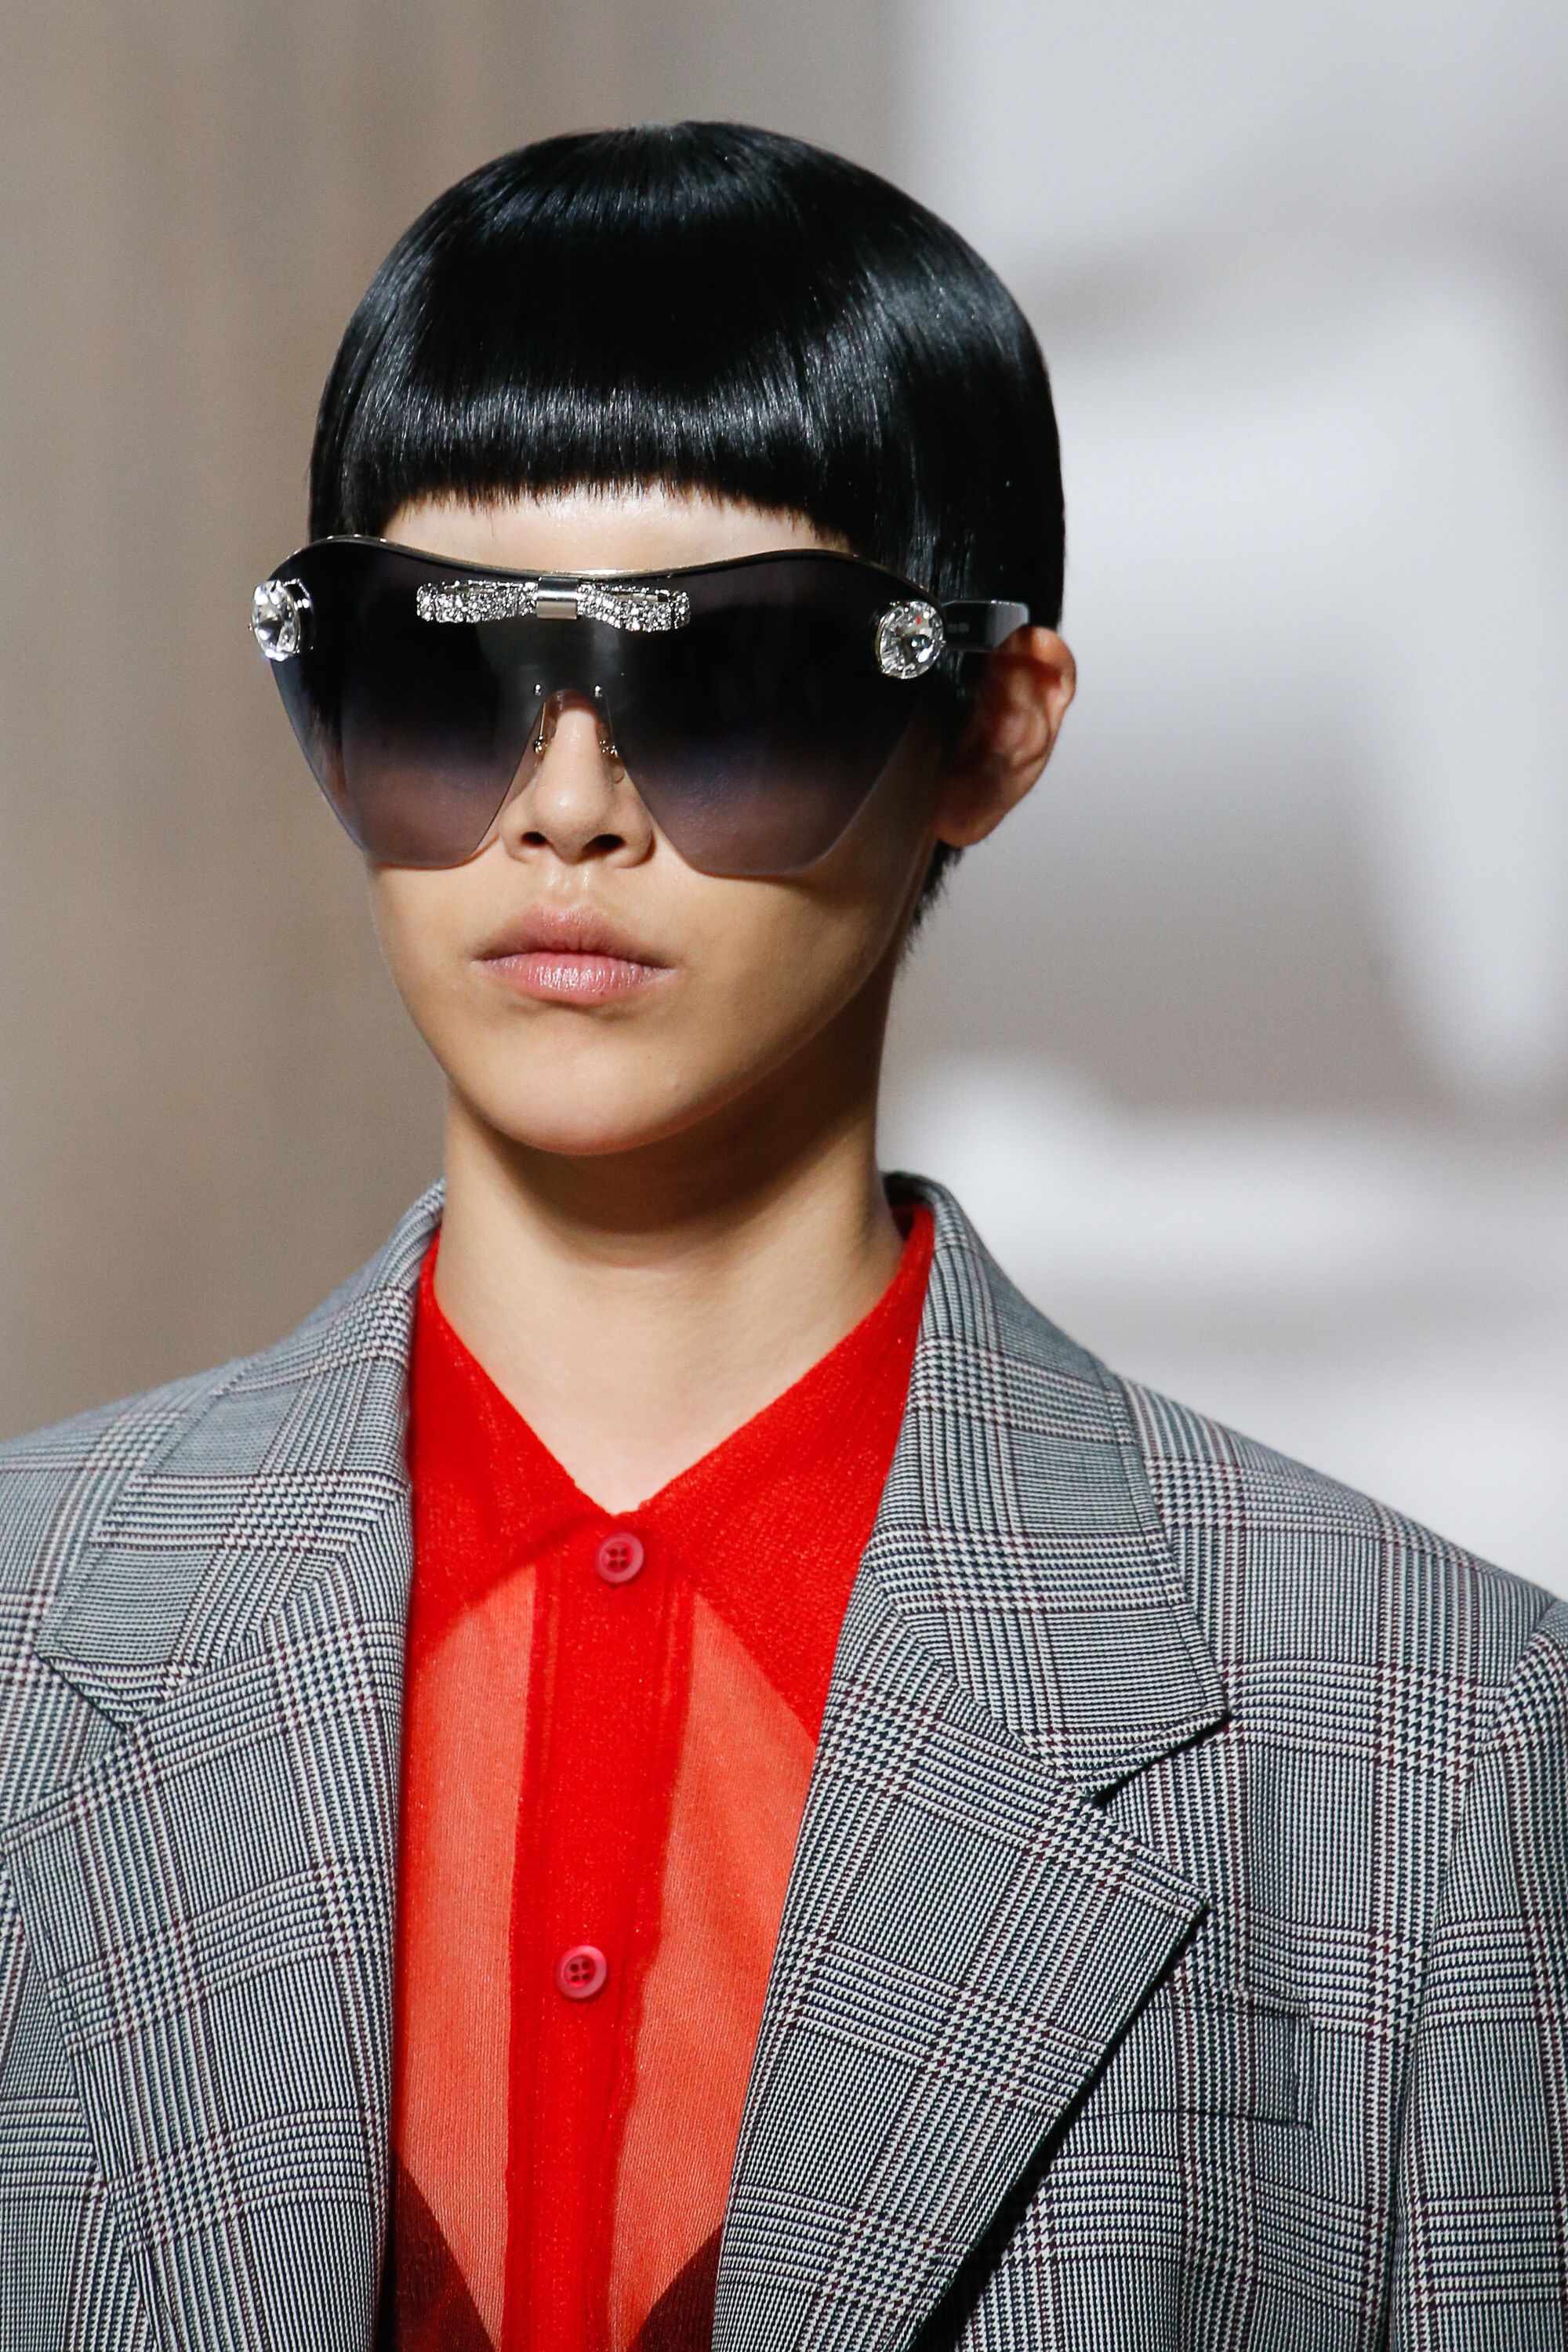 349803f4af80 Miu Miu Spring 2019 Ready-to-Wear Fashion Show Details  See detail photos for  Miu Miu Spring 2019 Ready-to-Wear collection. Look 27